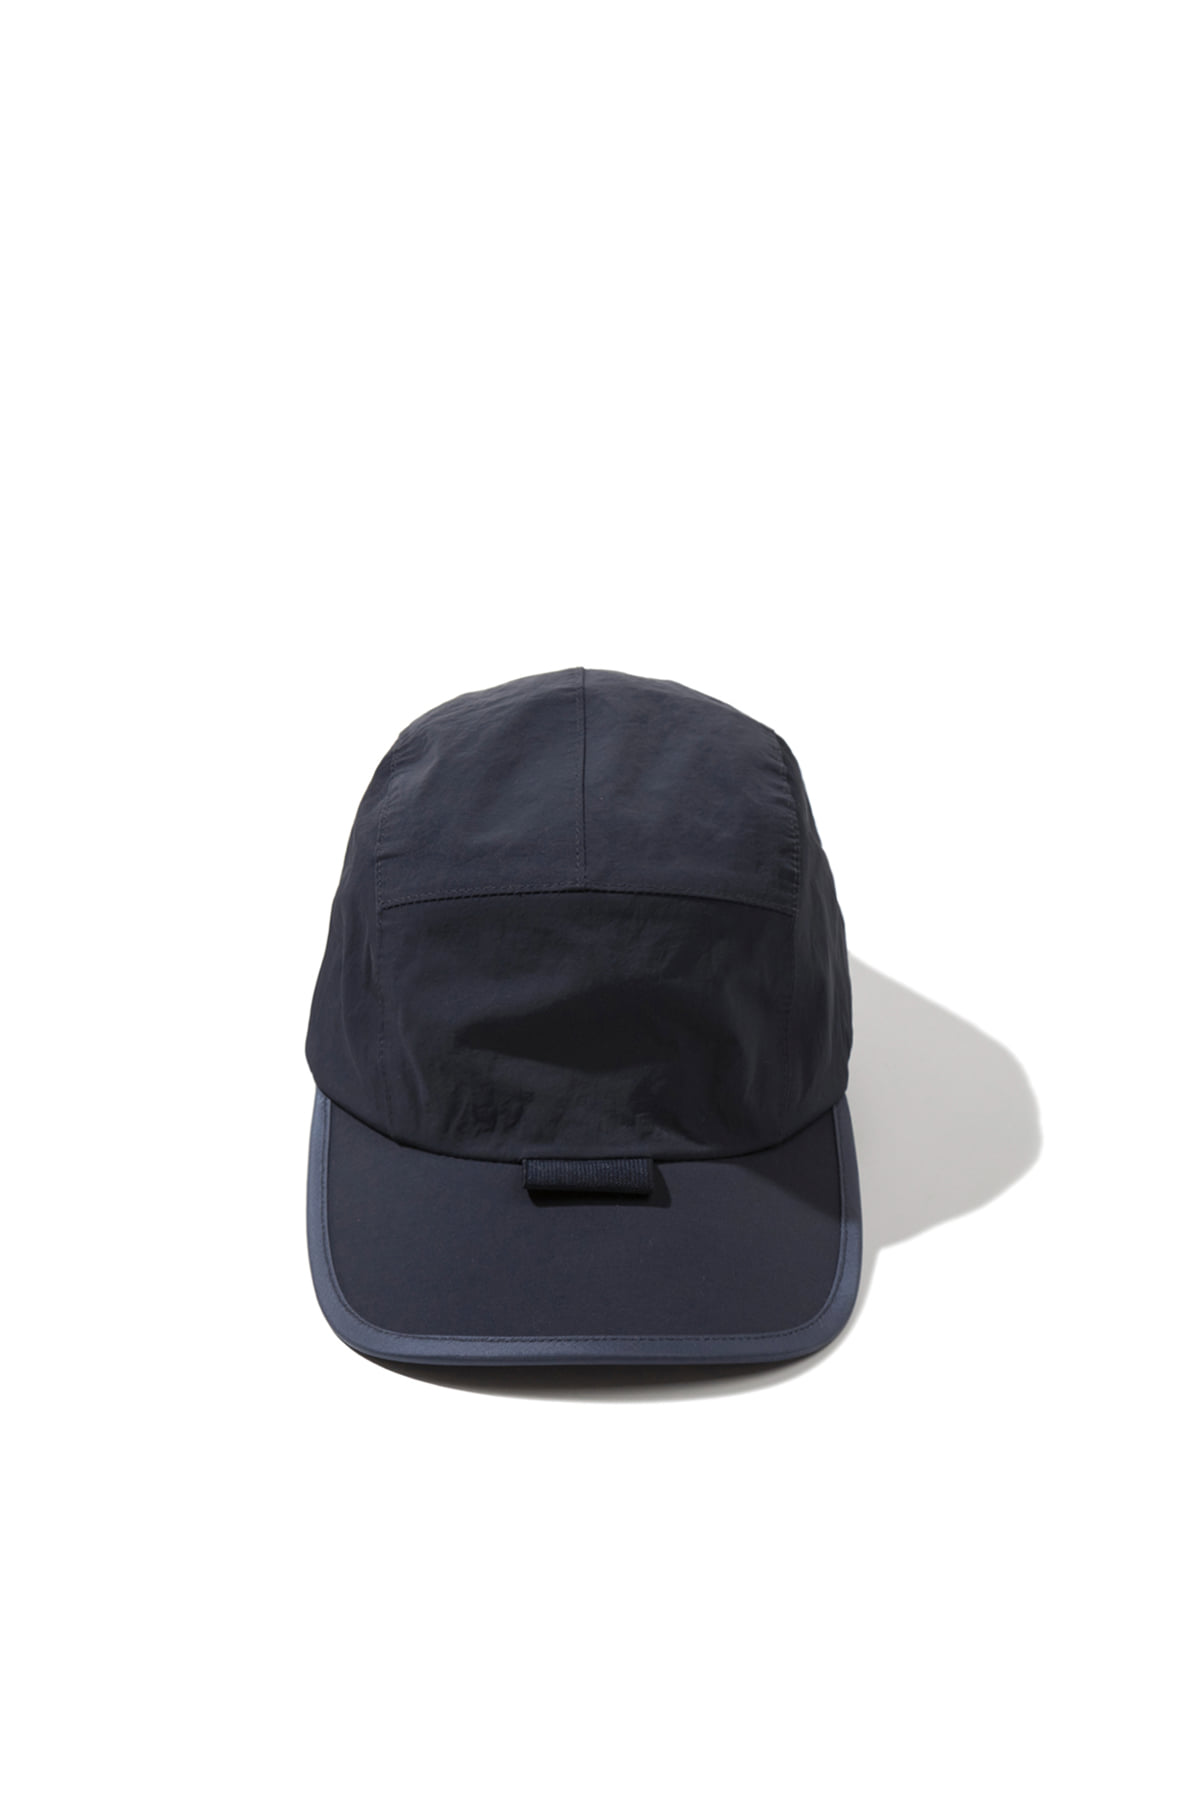 Blankof : HLG 01 C2 Volley Cap (Navy)